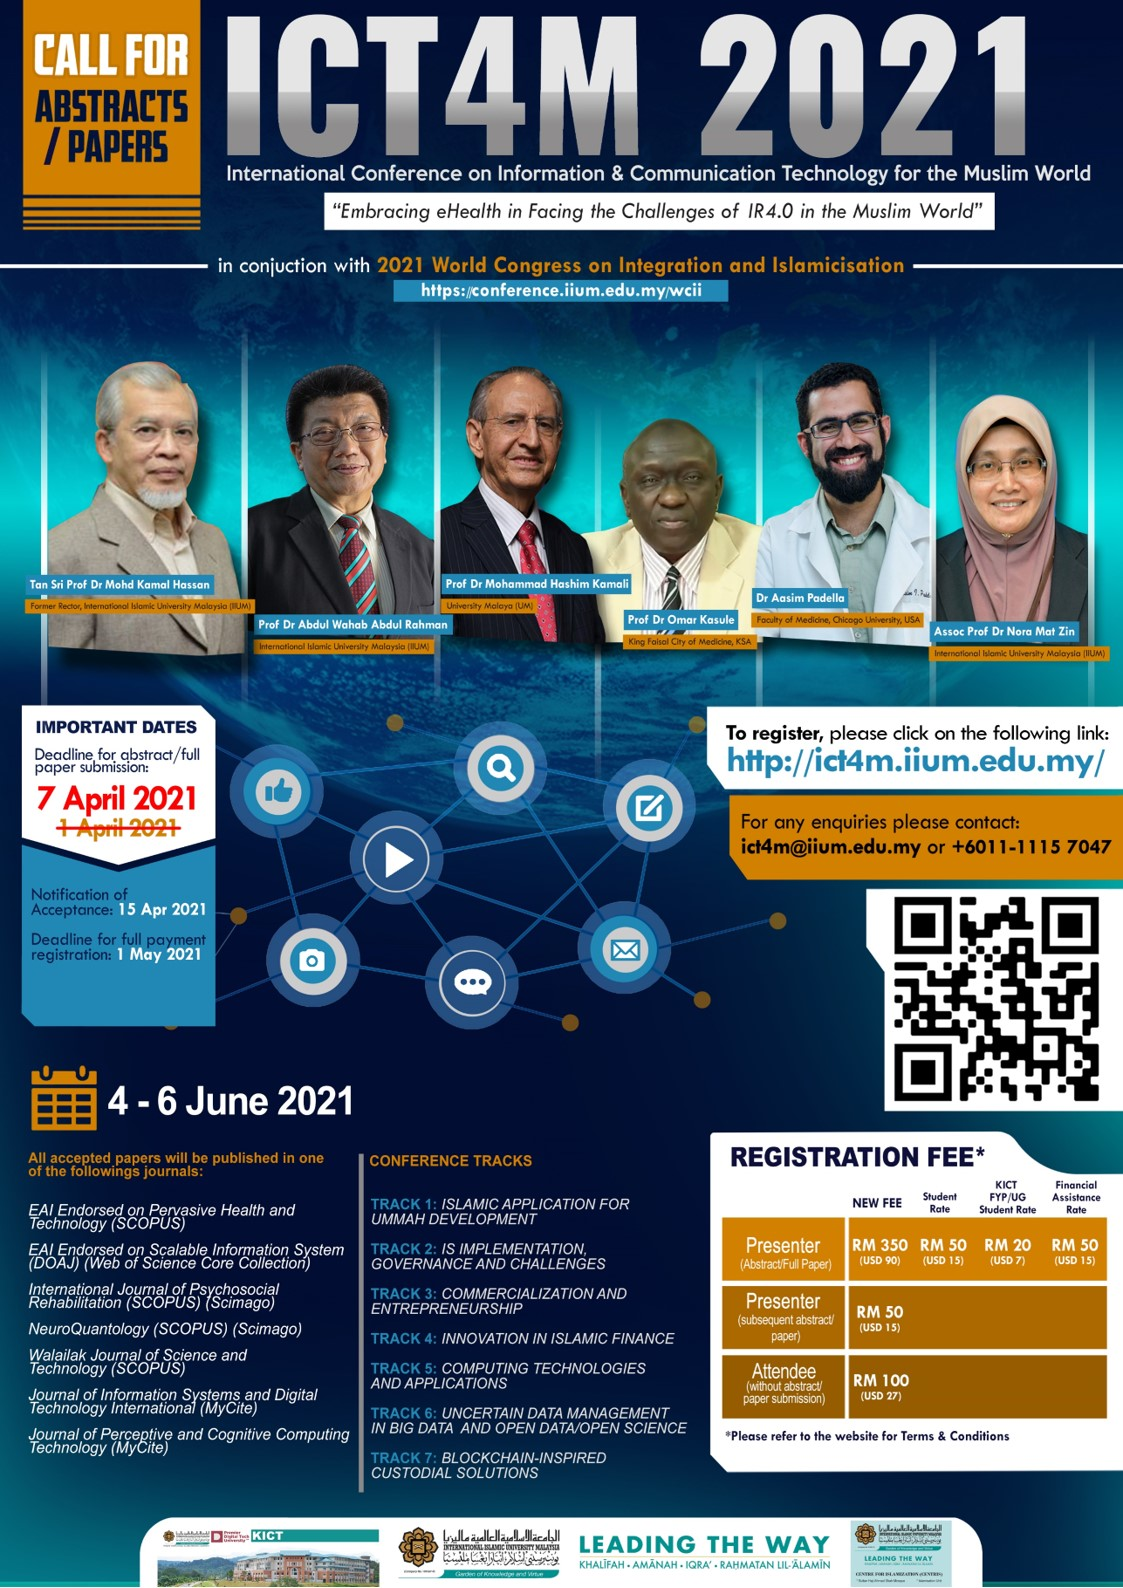 ICT4M 2021 - The 8th International Conference on Information & Communication Technology for the Muslim World